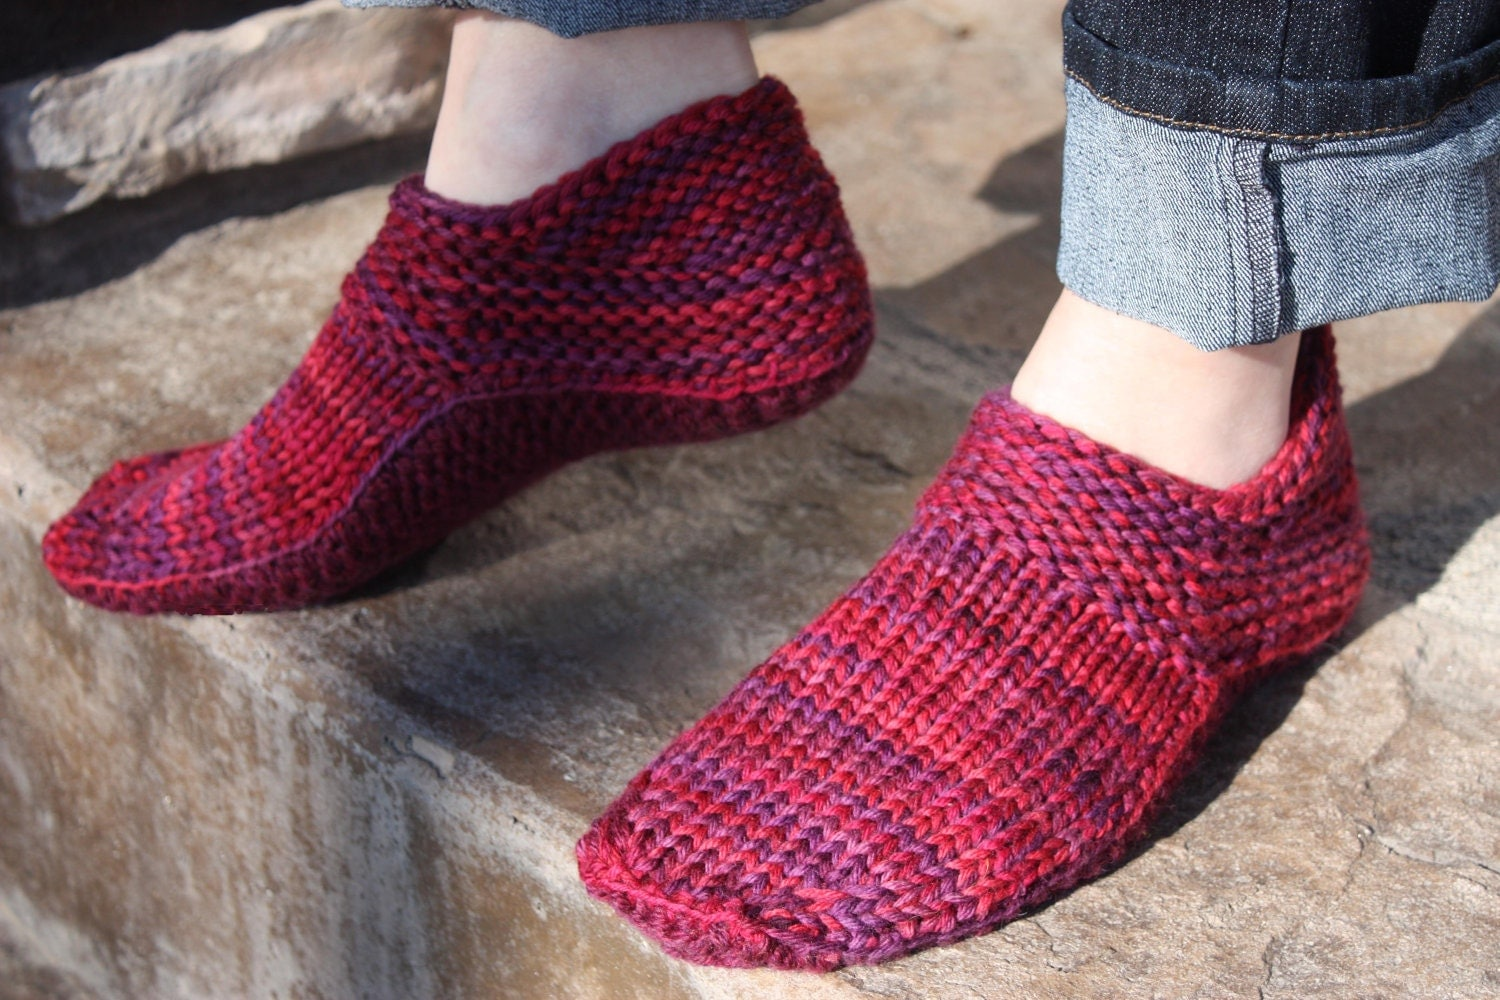 Slipper Patterns Knitting : Options Slippers PATTERN Knit knit w/crochet plus Felting